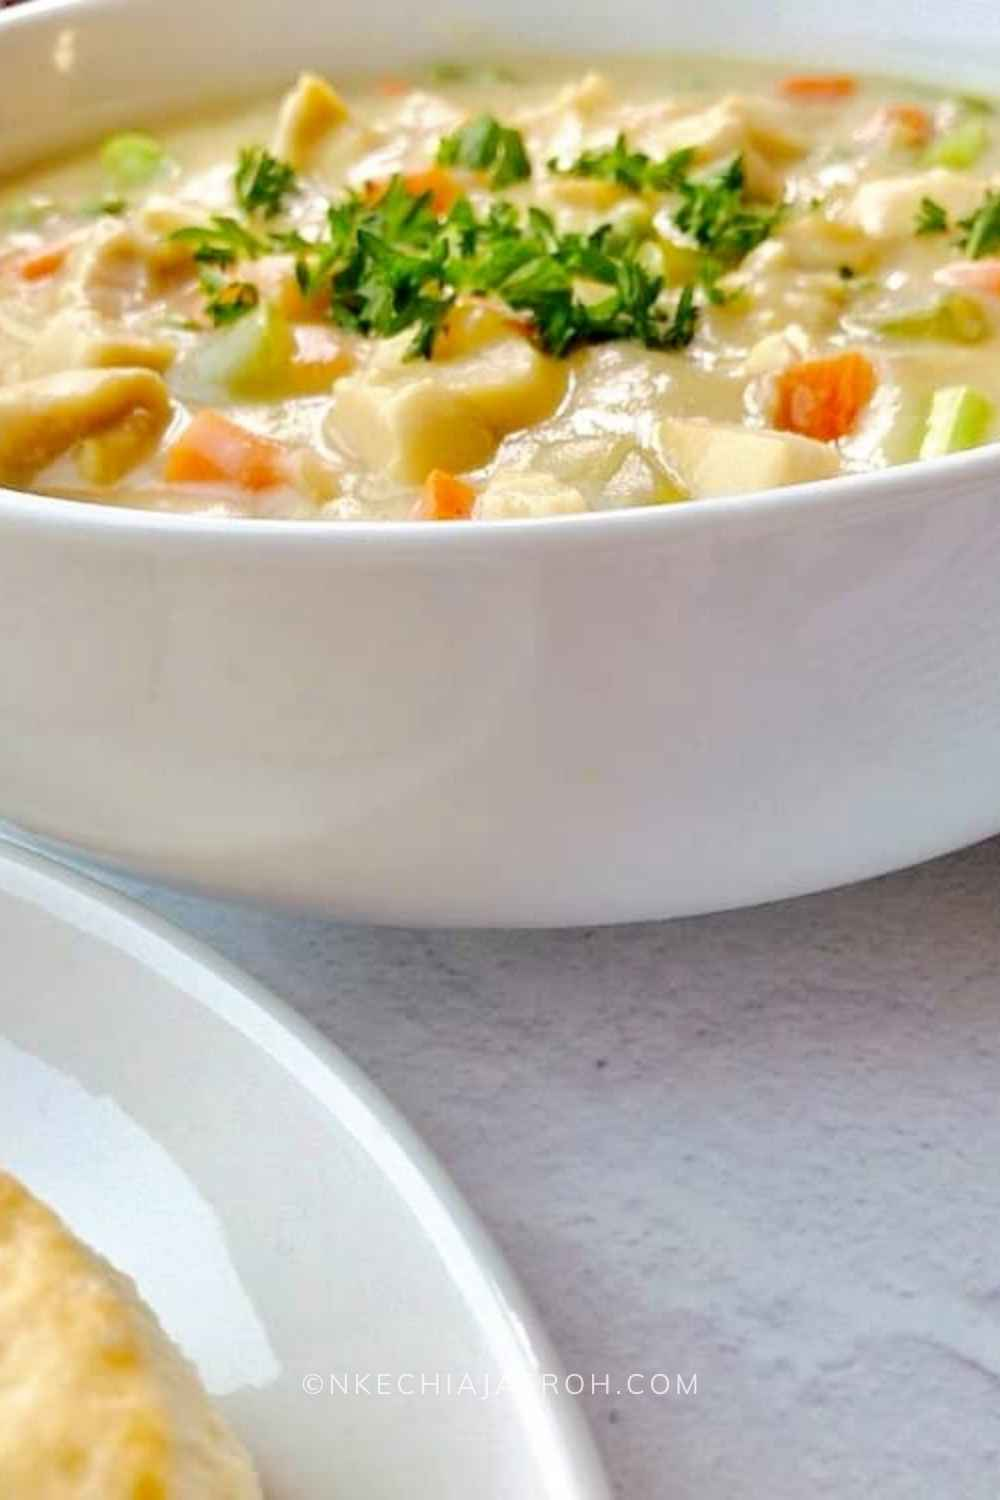 A perfect healthy chicken pot pie soup that is creamy, cozy, comforting, hearty, and very satisfying; this soup is gluten-free, dairy-free, nut-free, paleo-friendly, low-carb, and whole30-friendly. Serve this chicken pot pie soup with biscuits as we did, or crackers if you wish. This easy-to-make heart-healthy pot pie soup will keep you satisfied and wanting more at the same time!